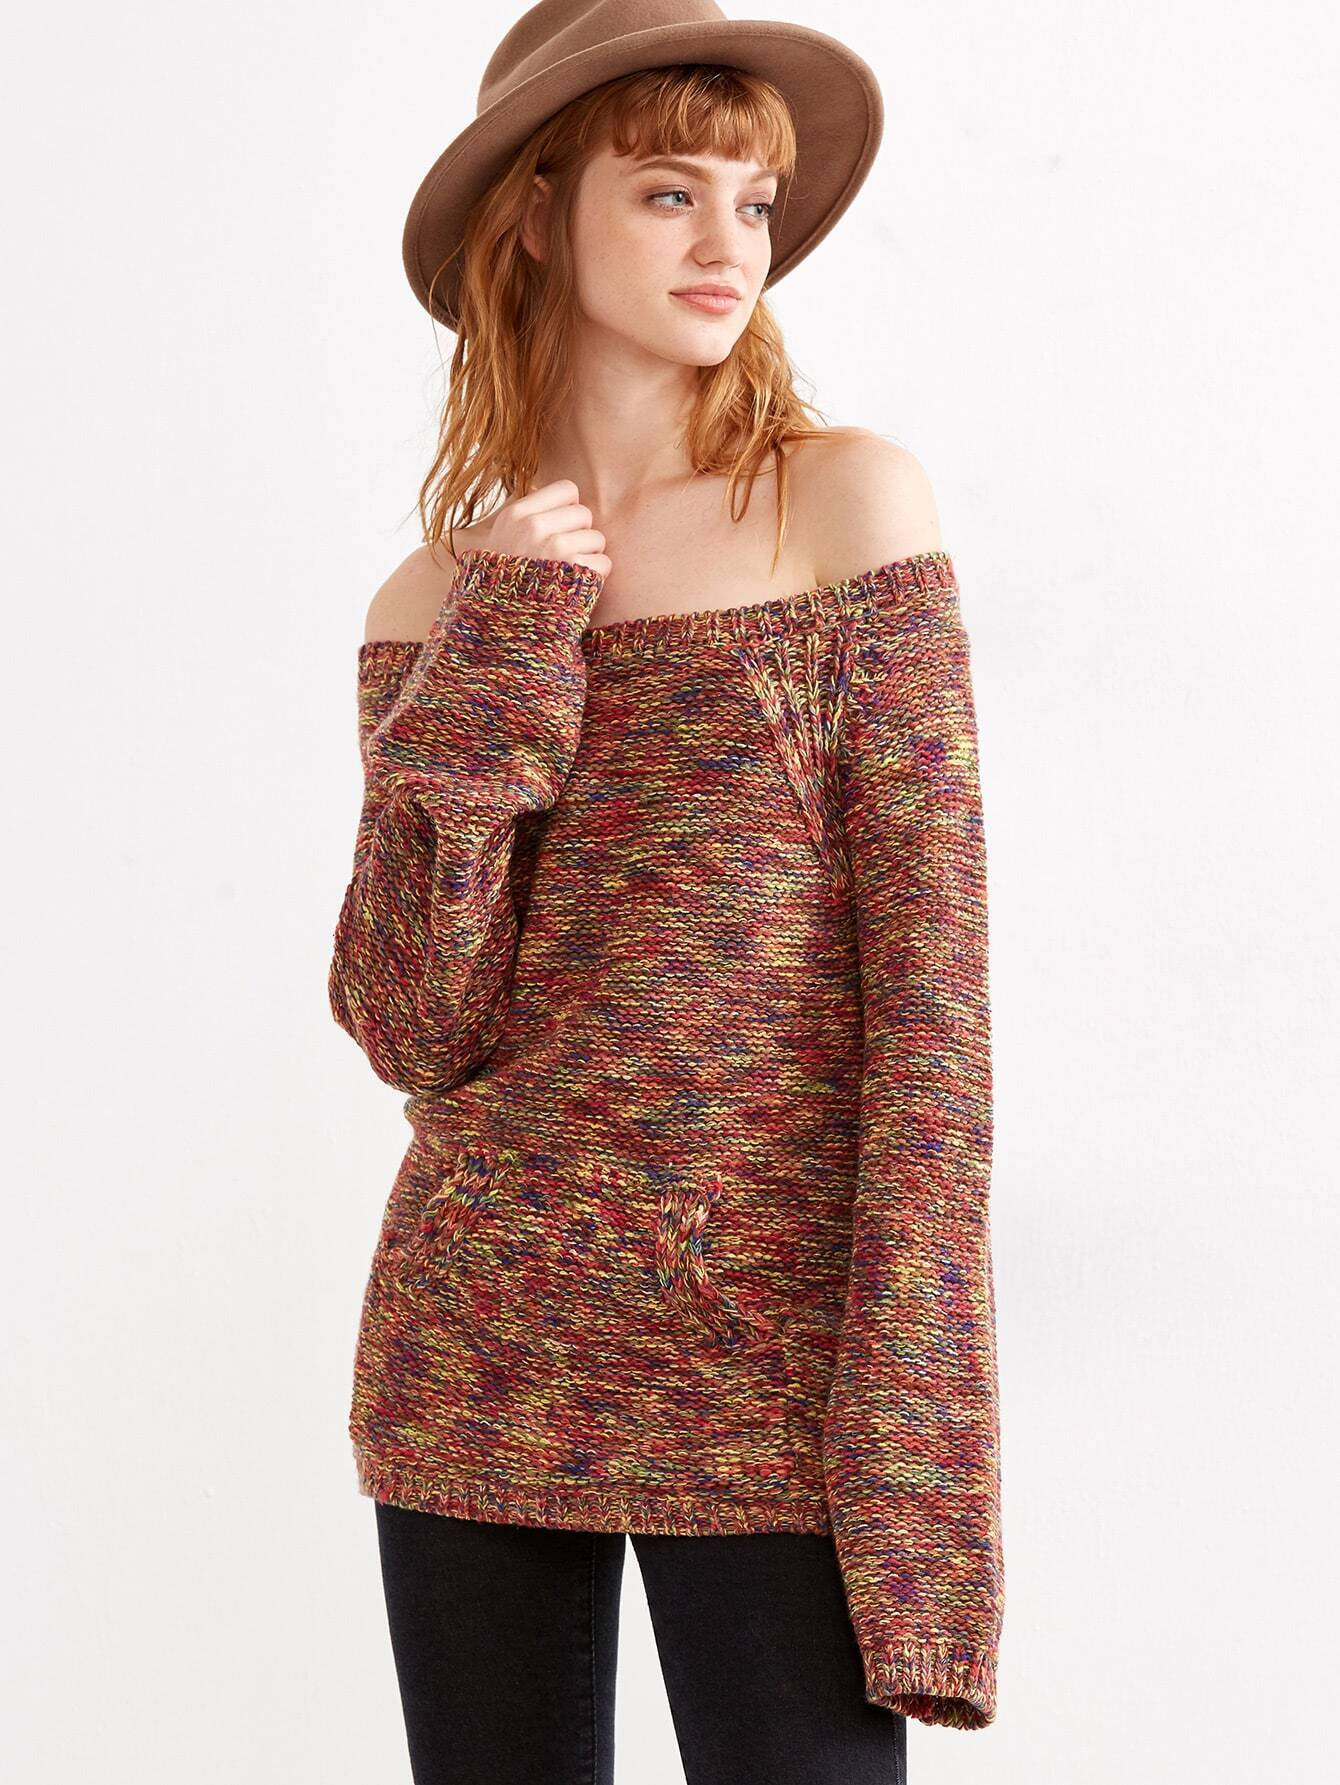 Multicolor Marled Knit Off The Shoulder Sweater -SheIn(Sheinside)